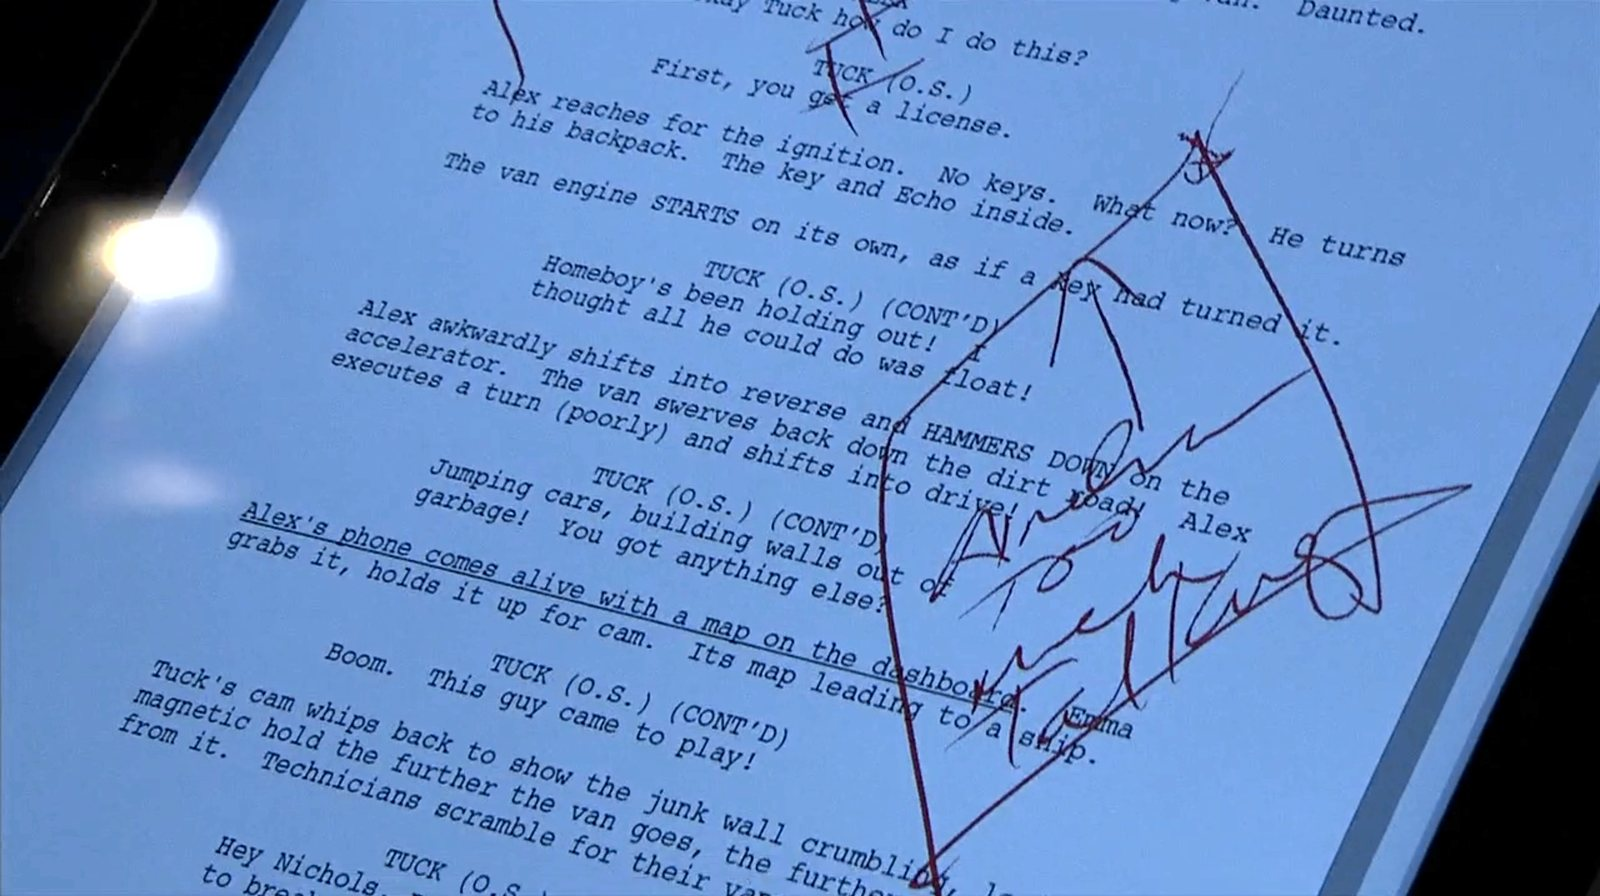 Two lines in the script have red crosses drawn over them, and a box with an arrow encloses a comment on a specific passage.